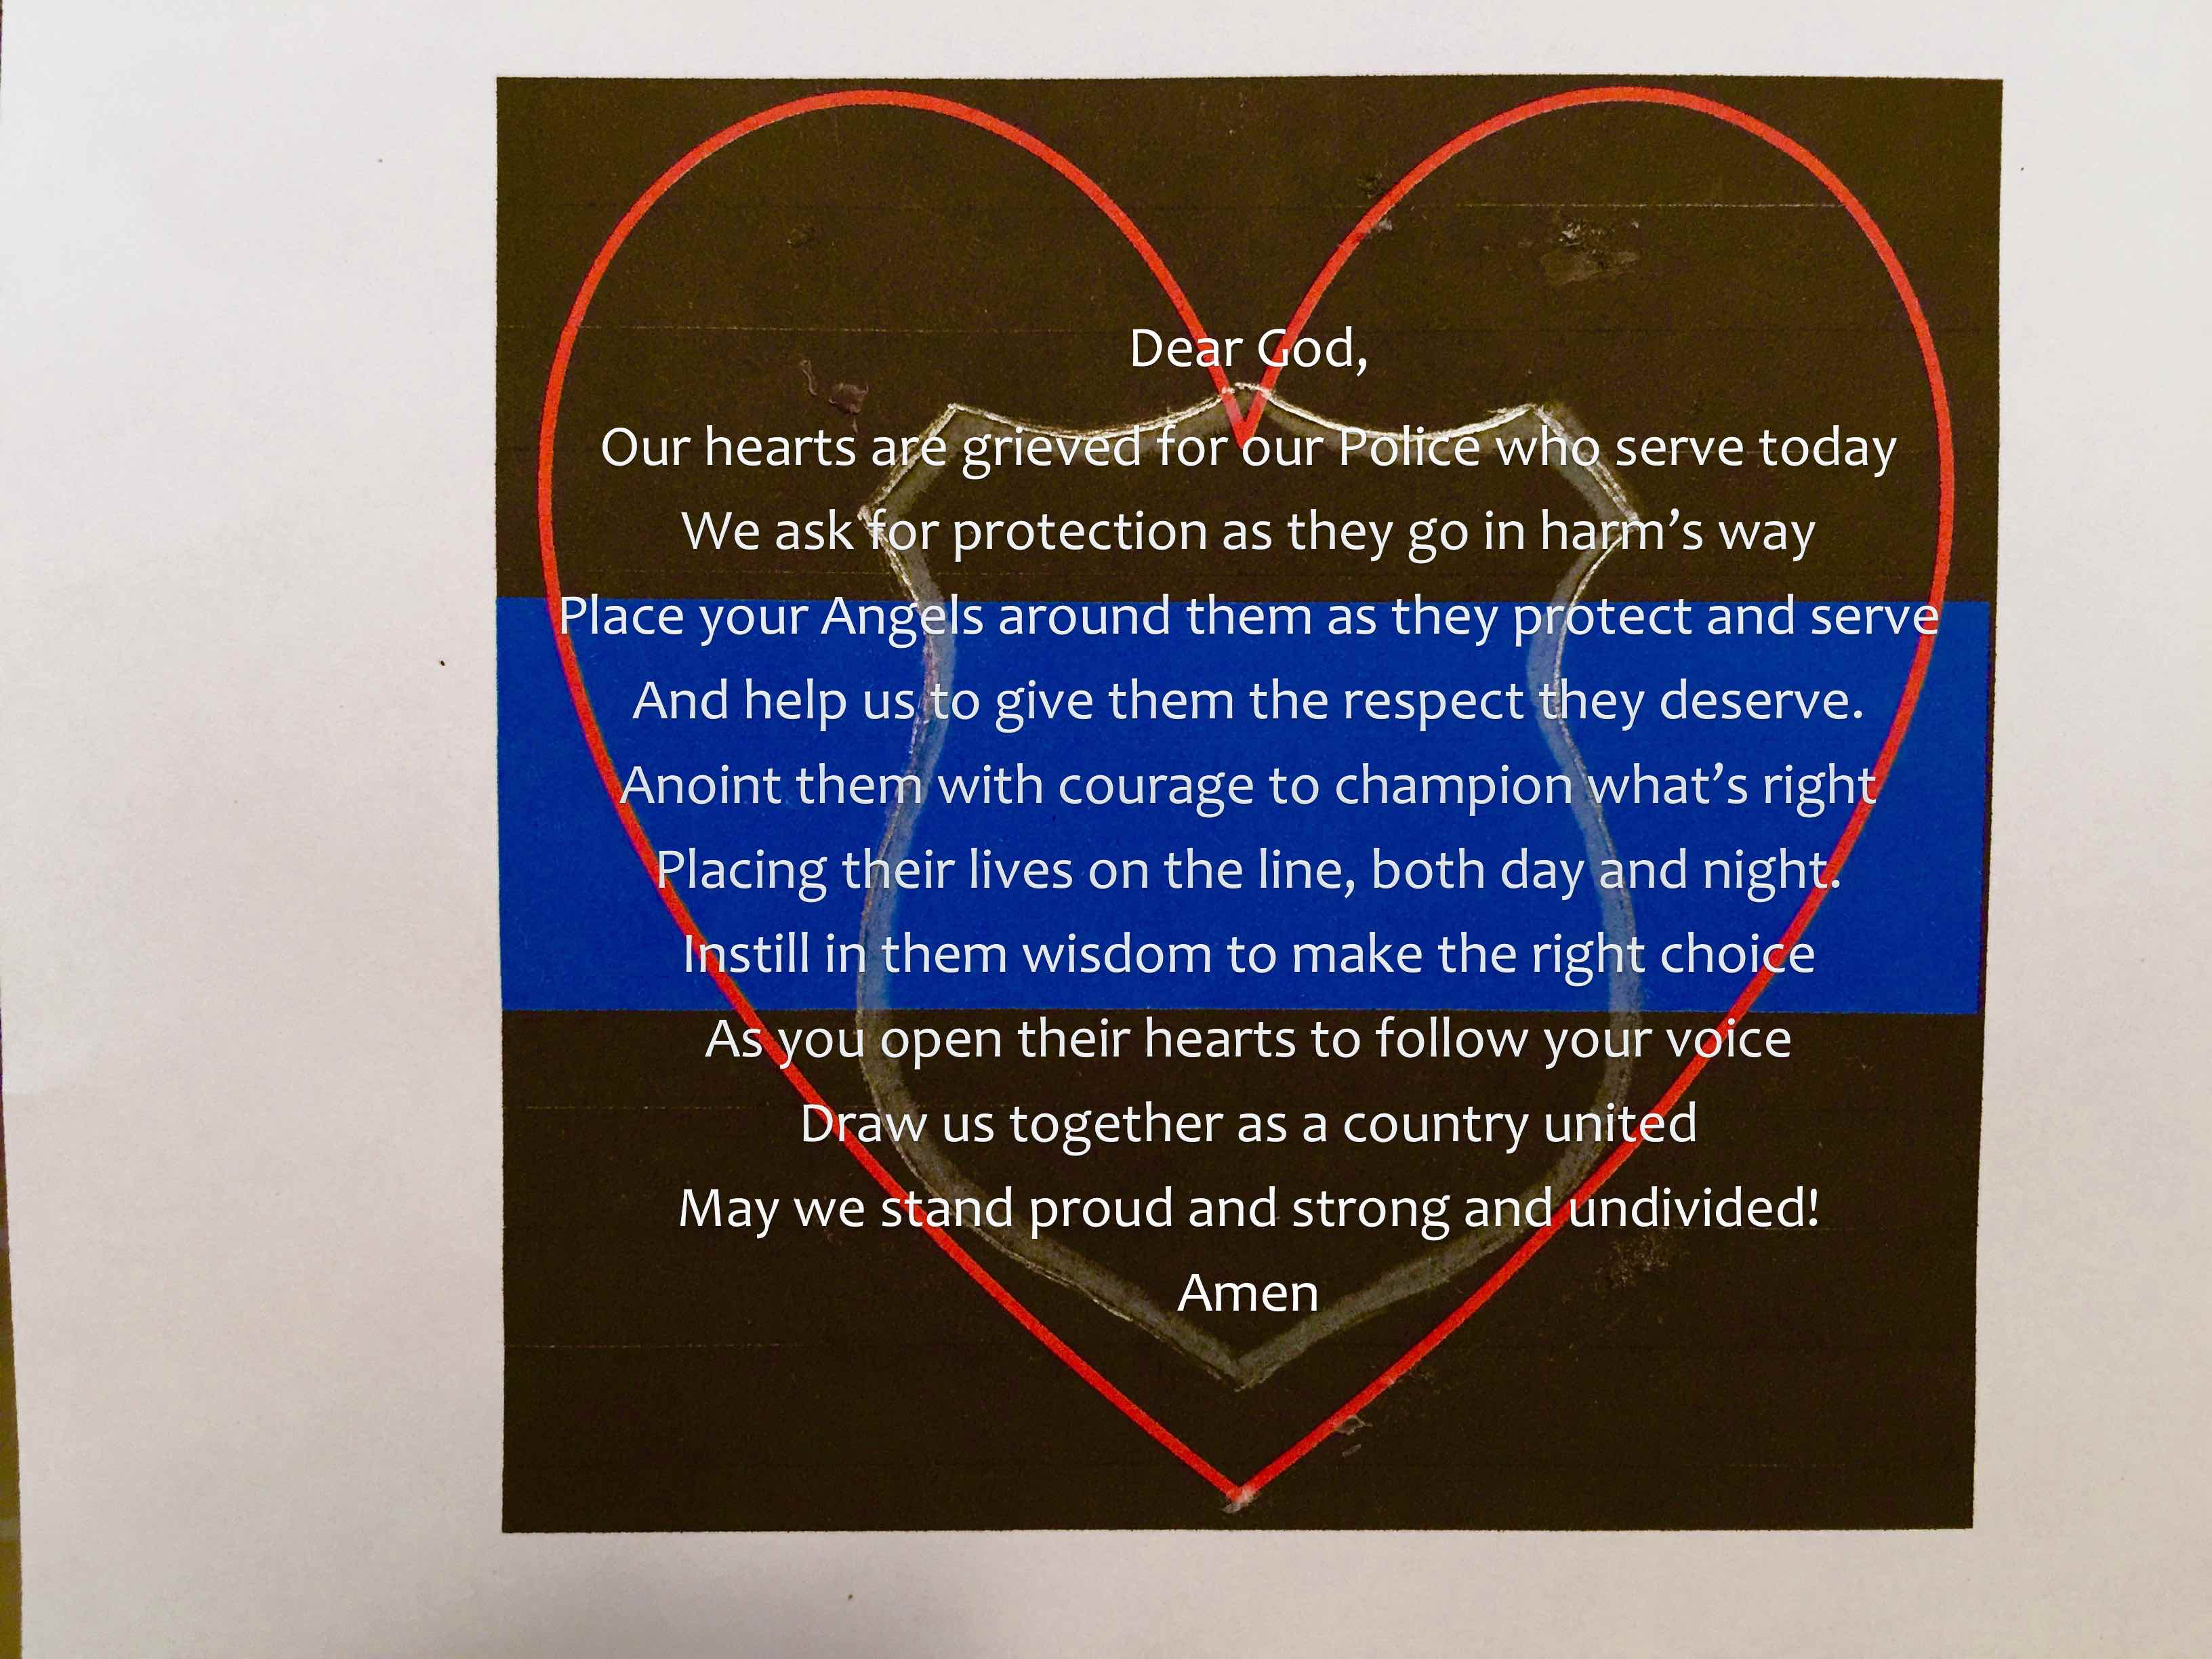 A Prayer for our Police Who Protect andServe